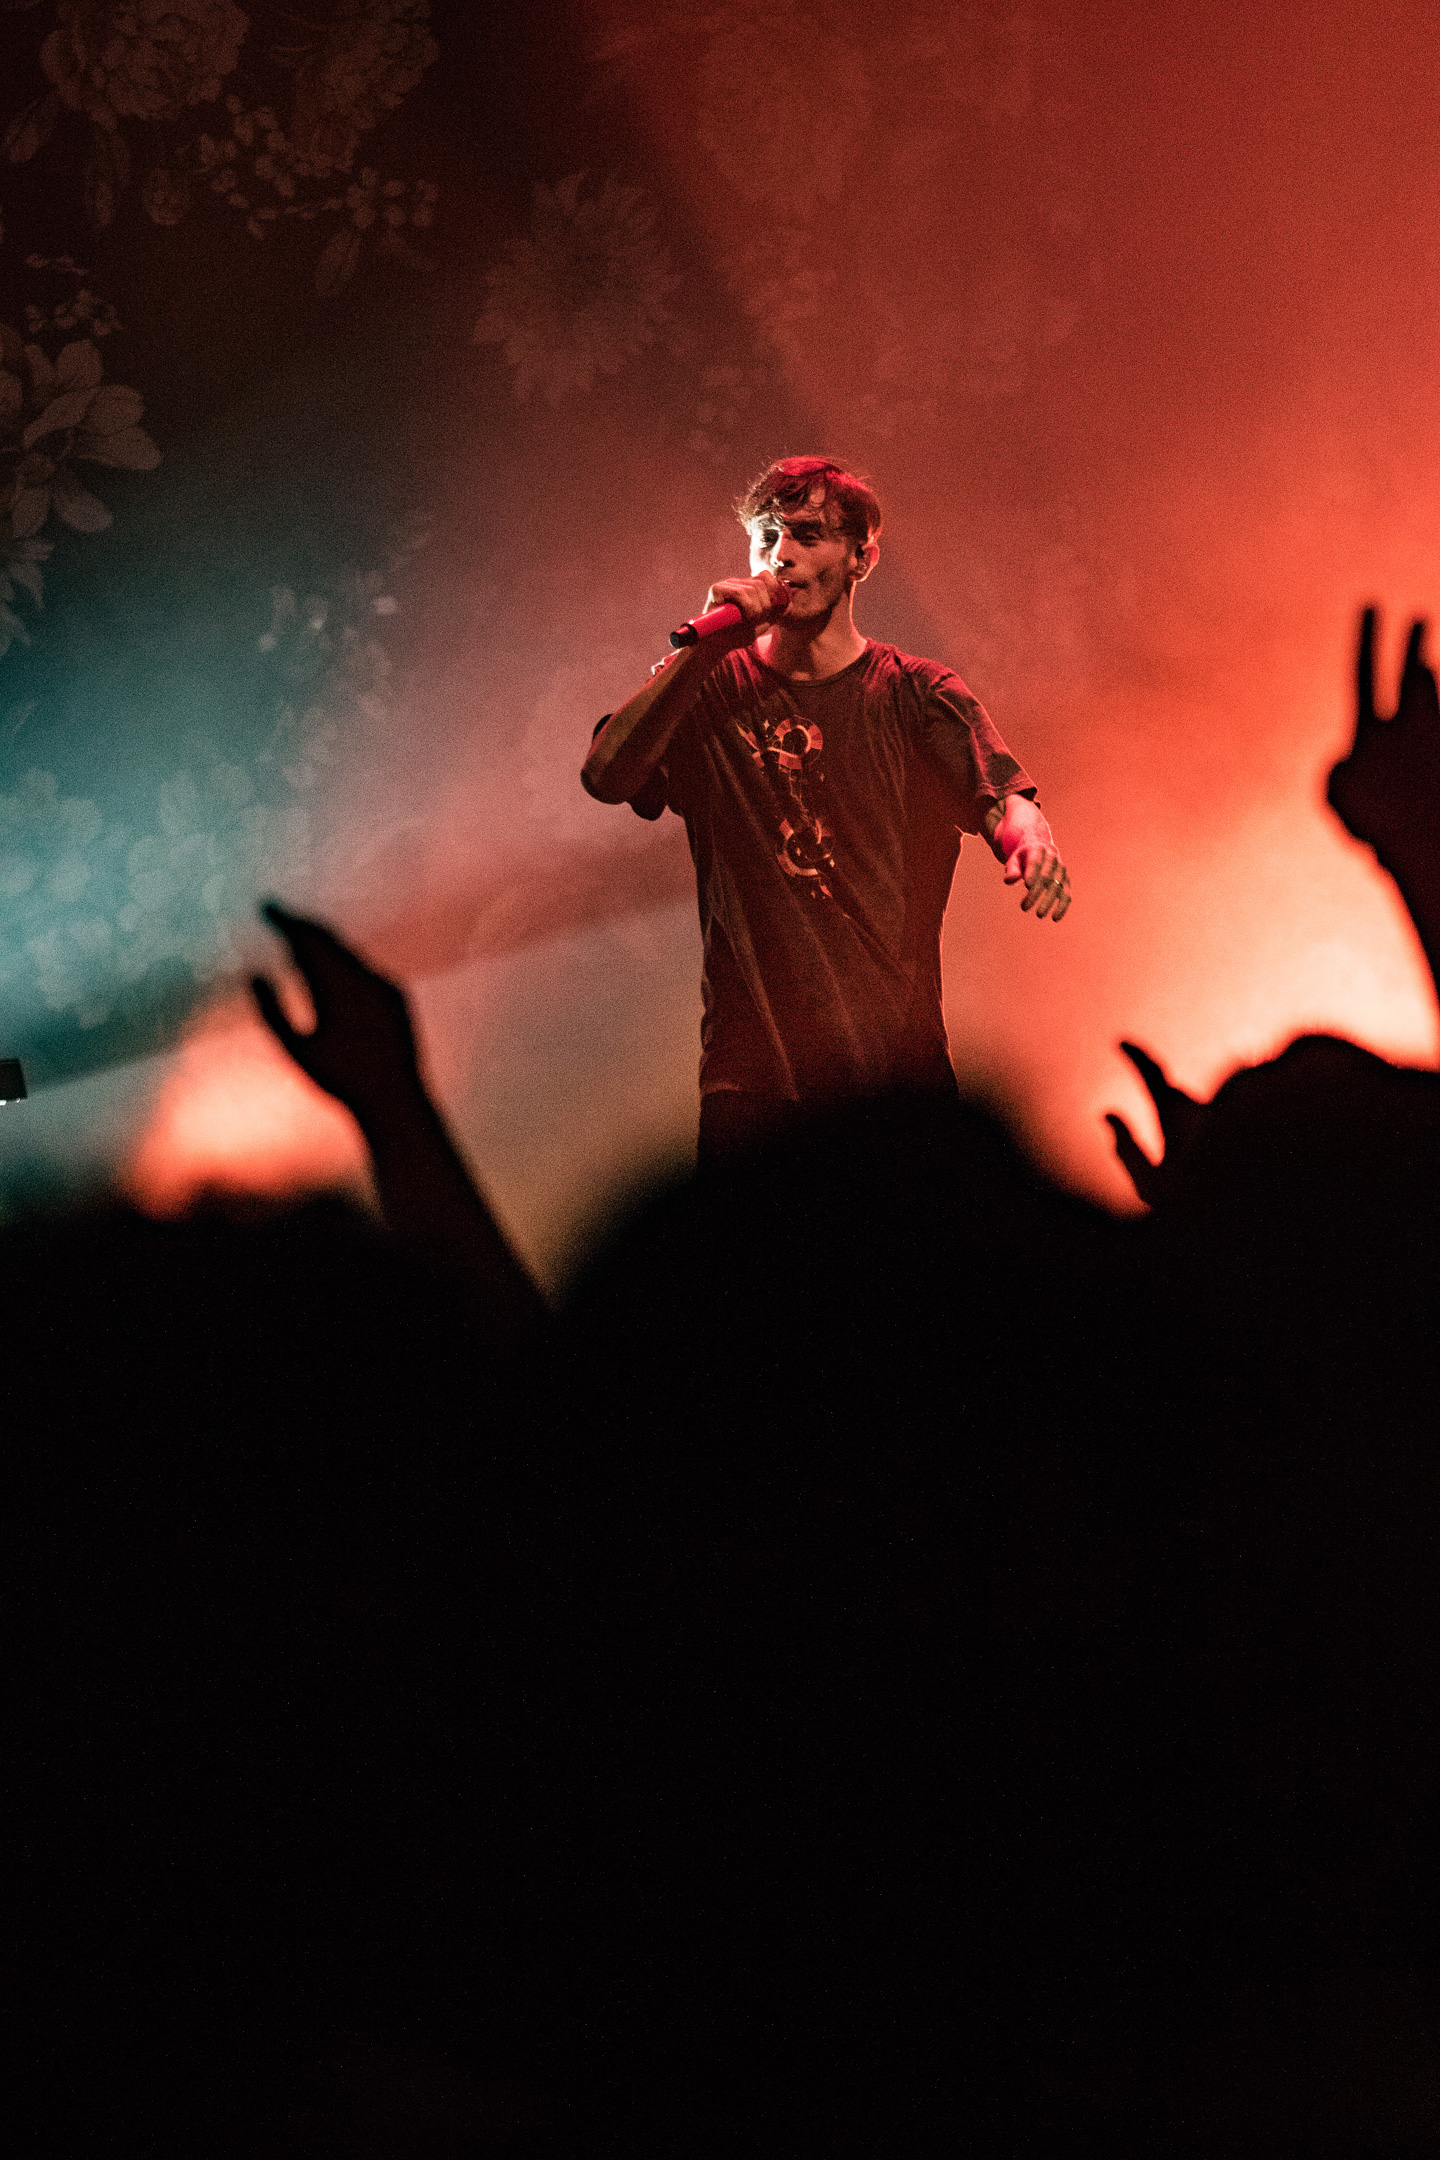 New Politics, Dreamers & The Wrecks - Concert Photos Denver